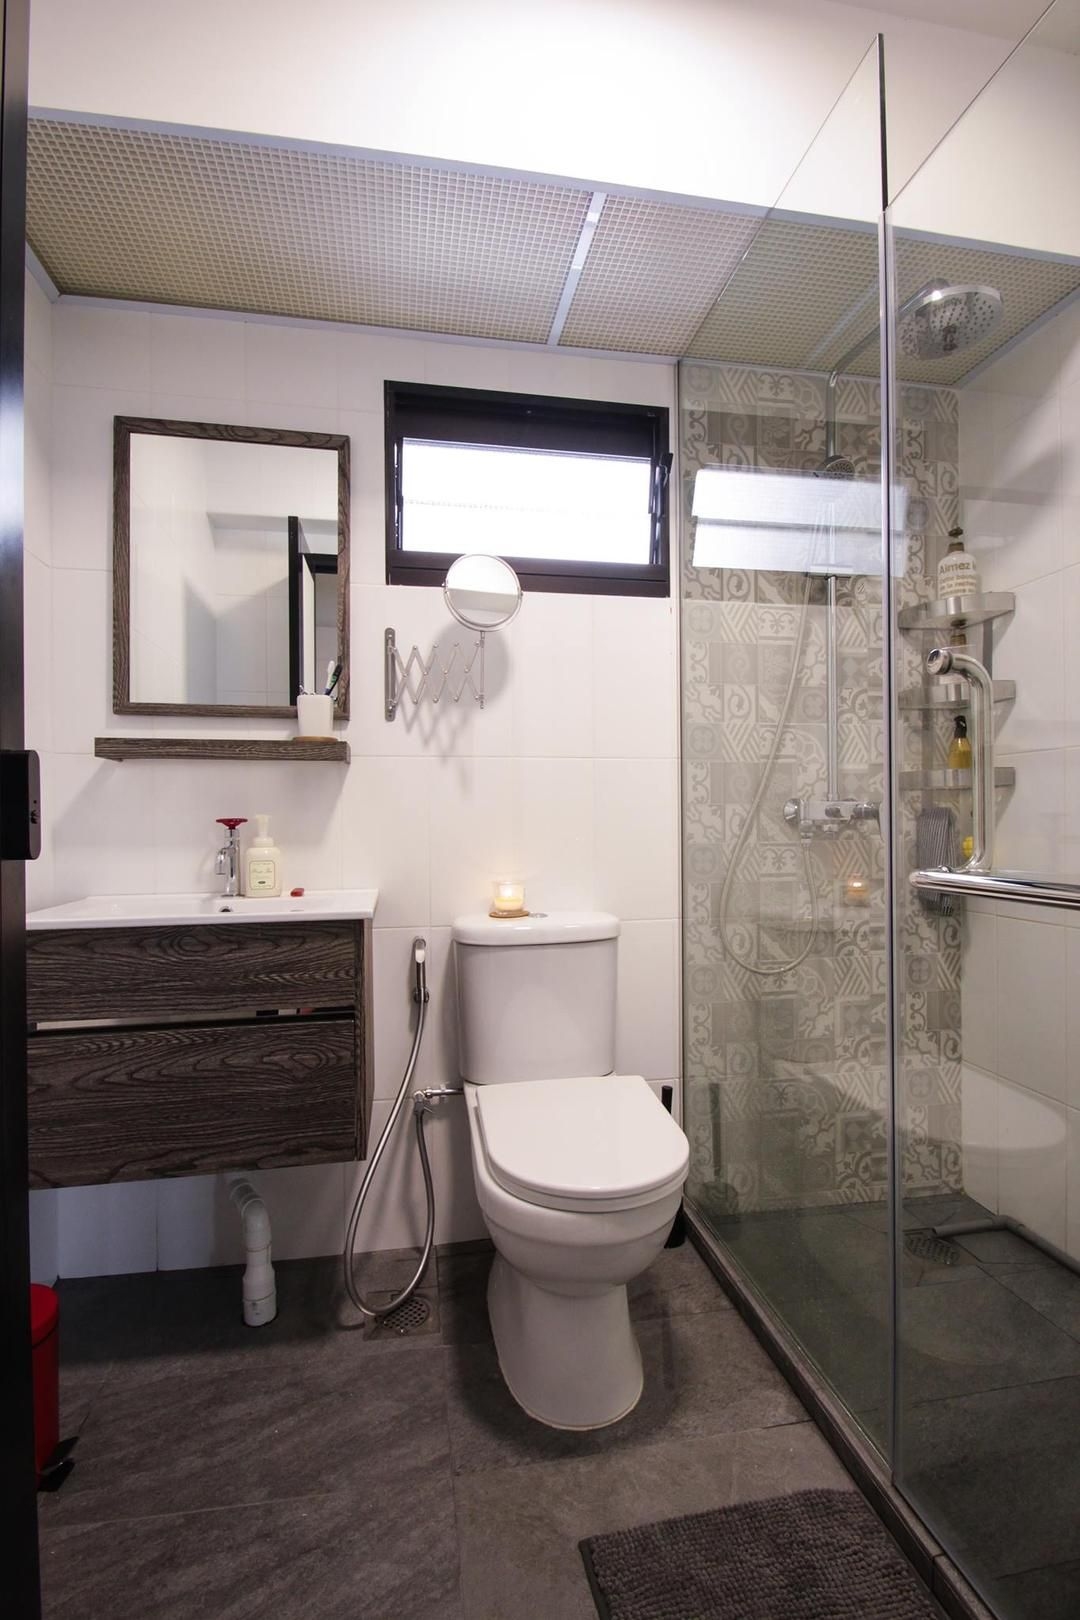 Check Out This Contemporary Style Hdb Bathroom And Other Similar Styles On Qanvast Singapore Bathroom Design Modern Bathroom Bathroom Design